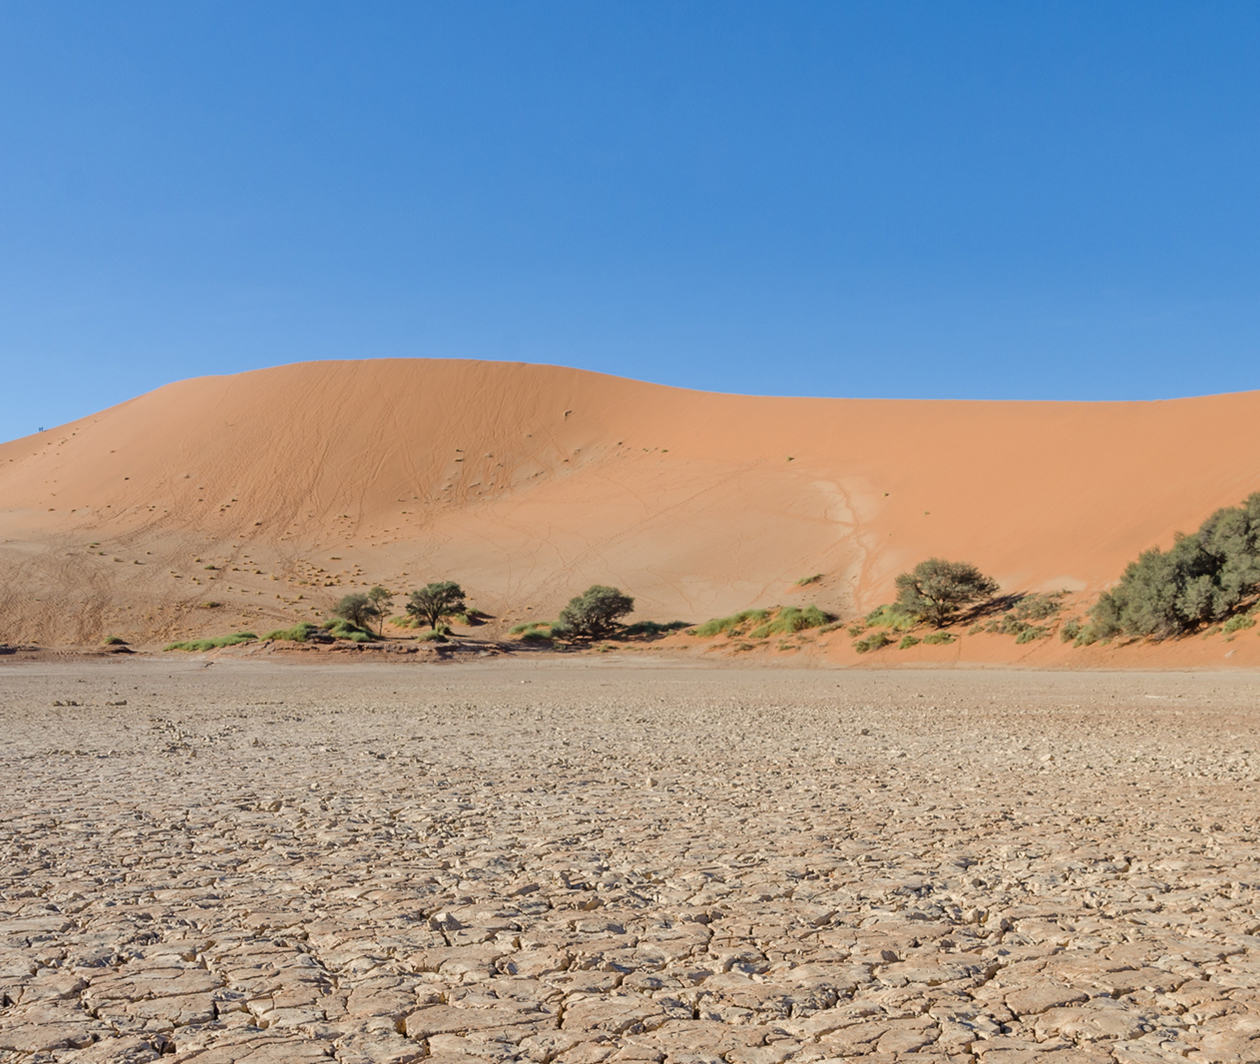 Desertification: Problems and Solutions